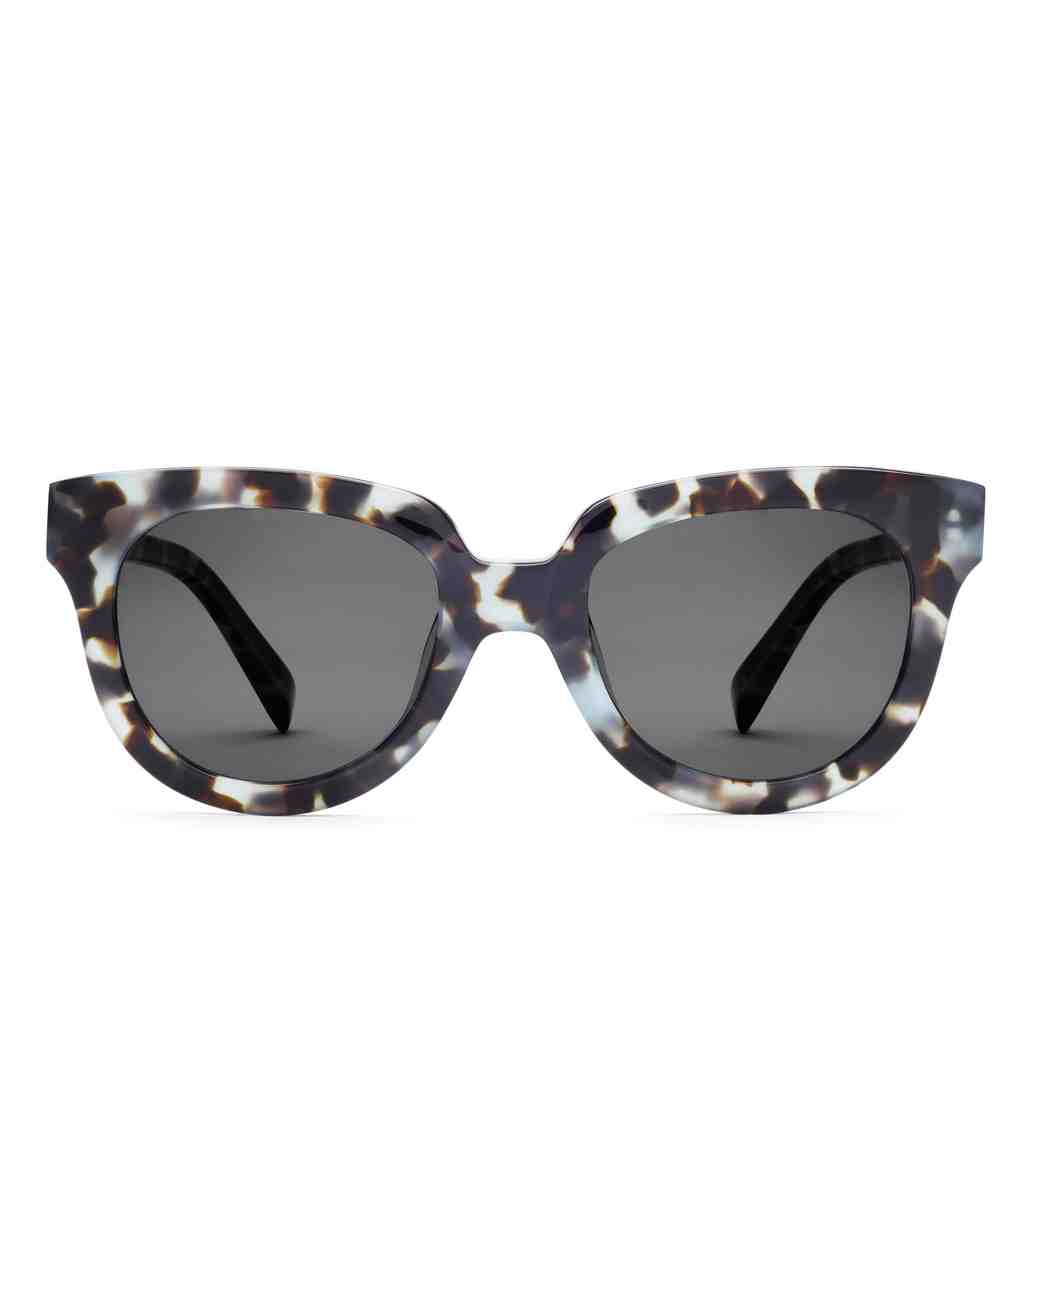 will-you-be-my-bridesmaid-idea-warby-parker-sunglasses-0216.jpg